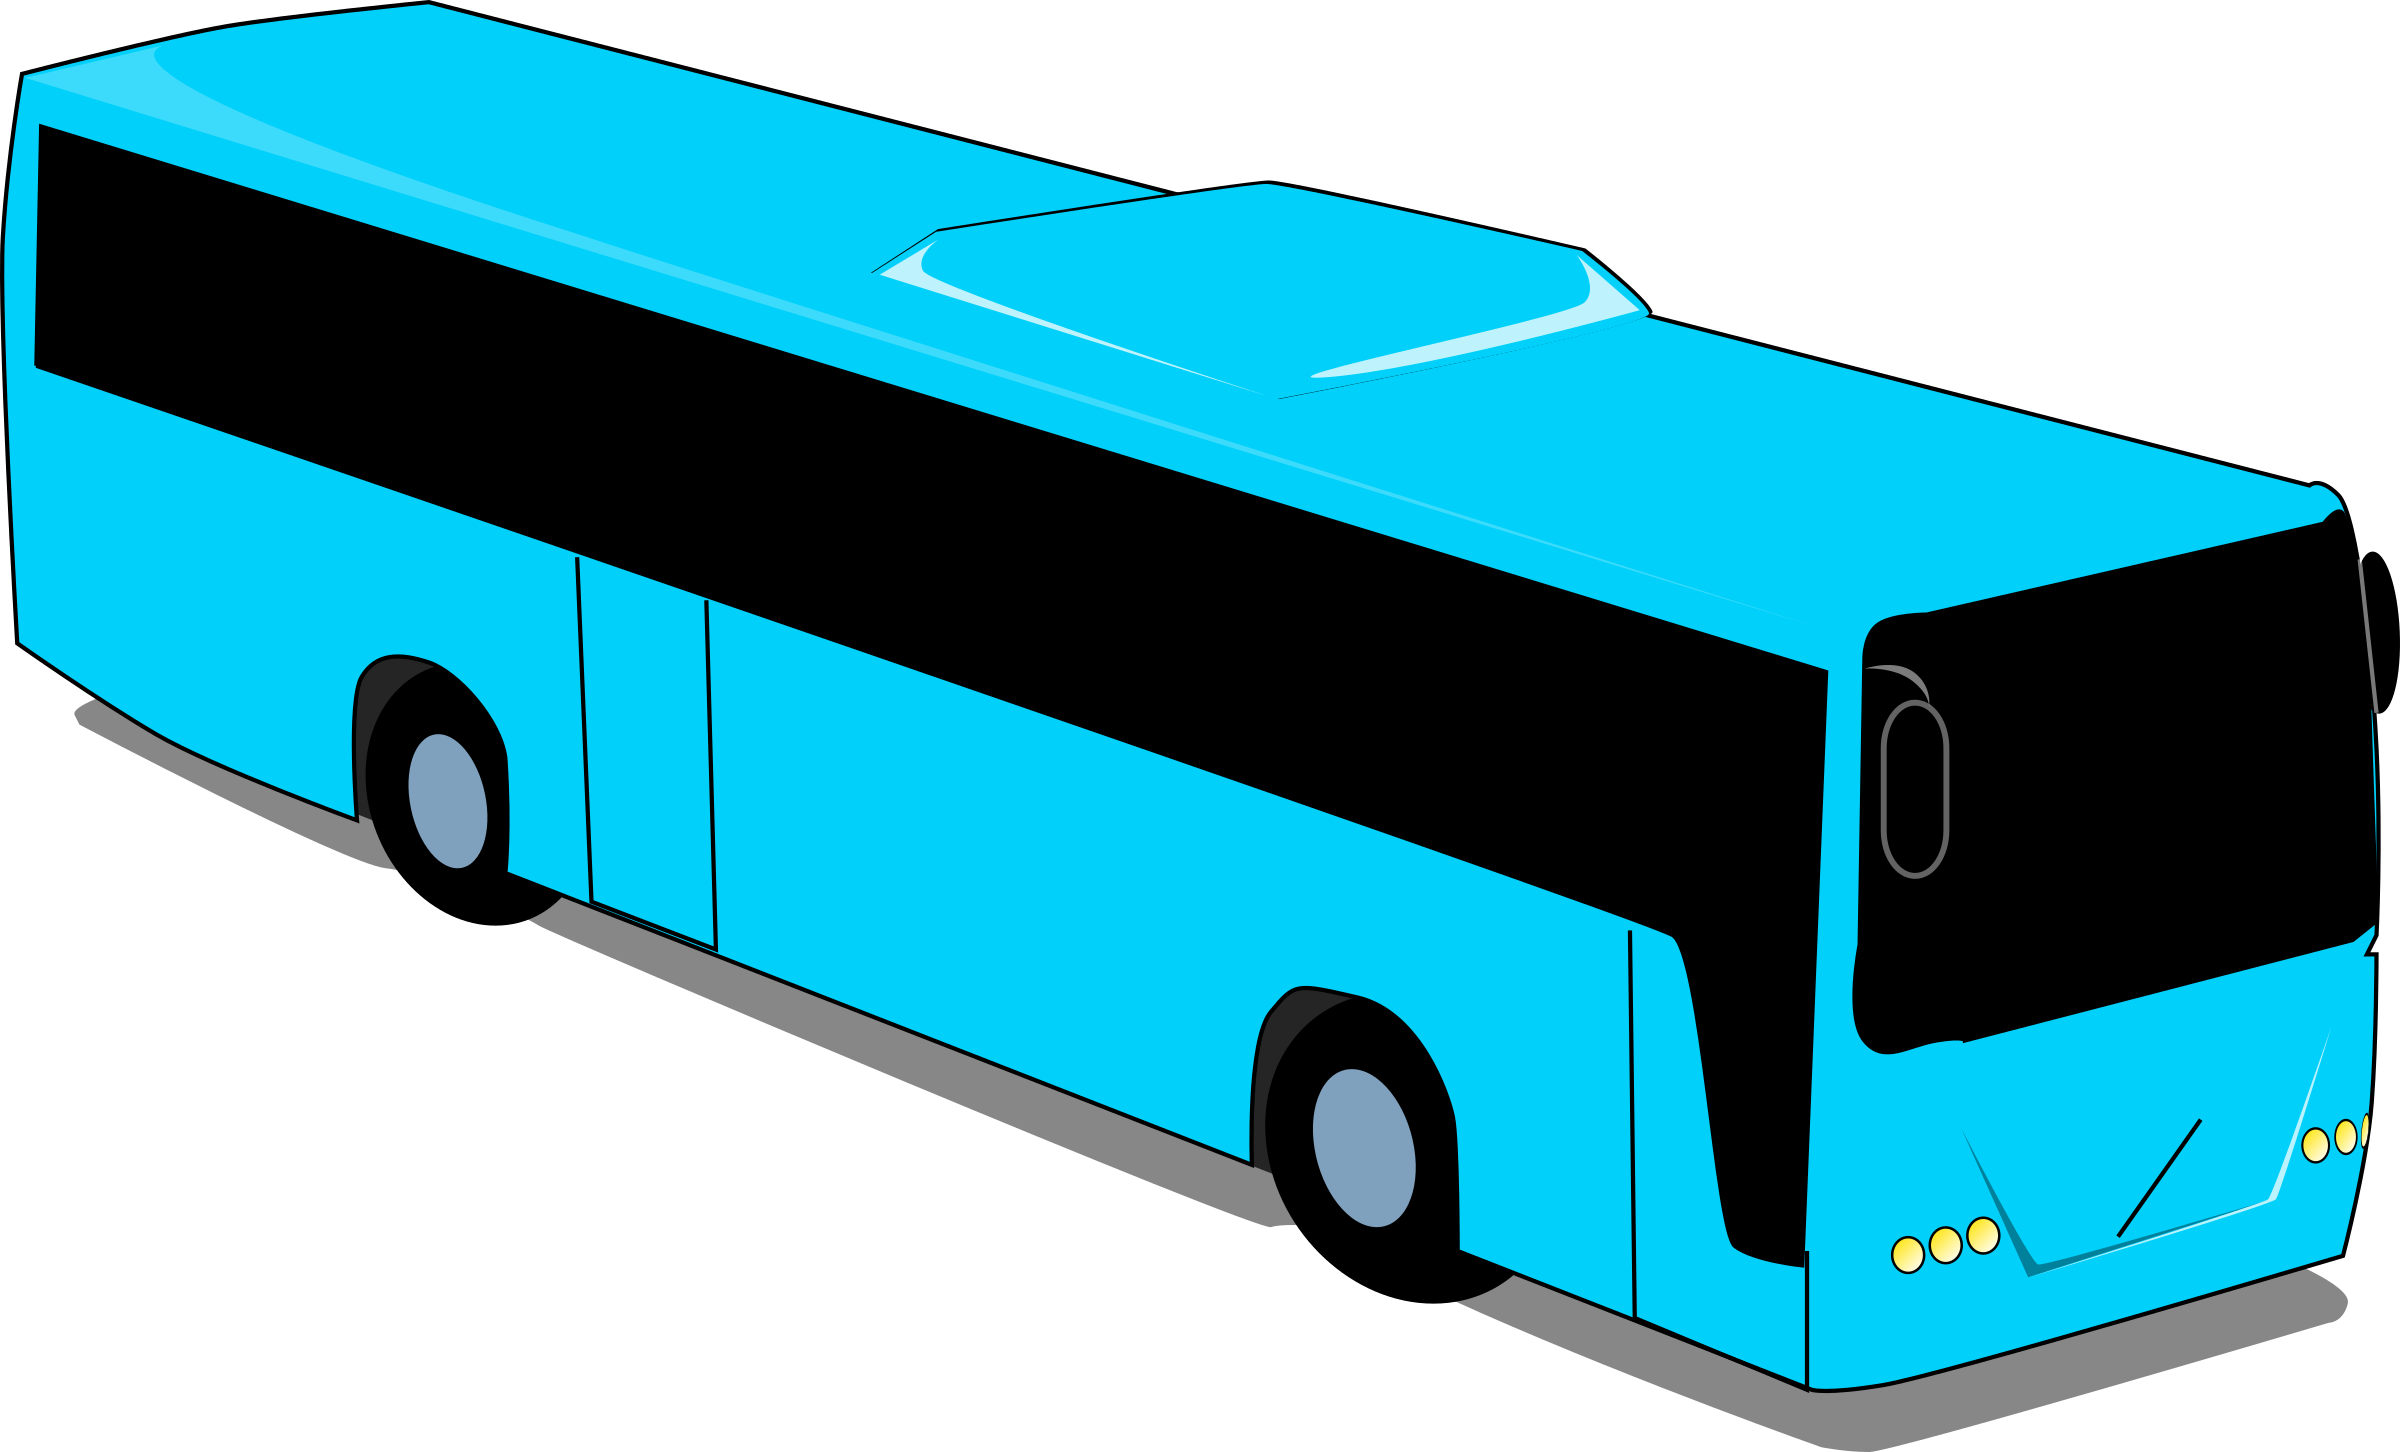 Clipart bus rectangle. Big image png